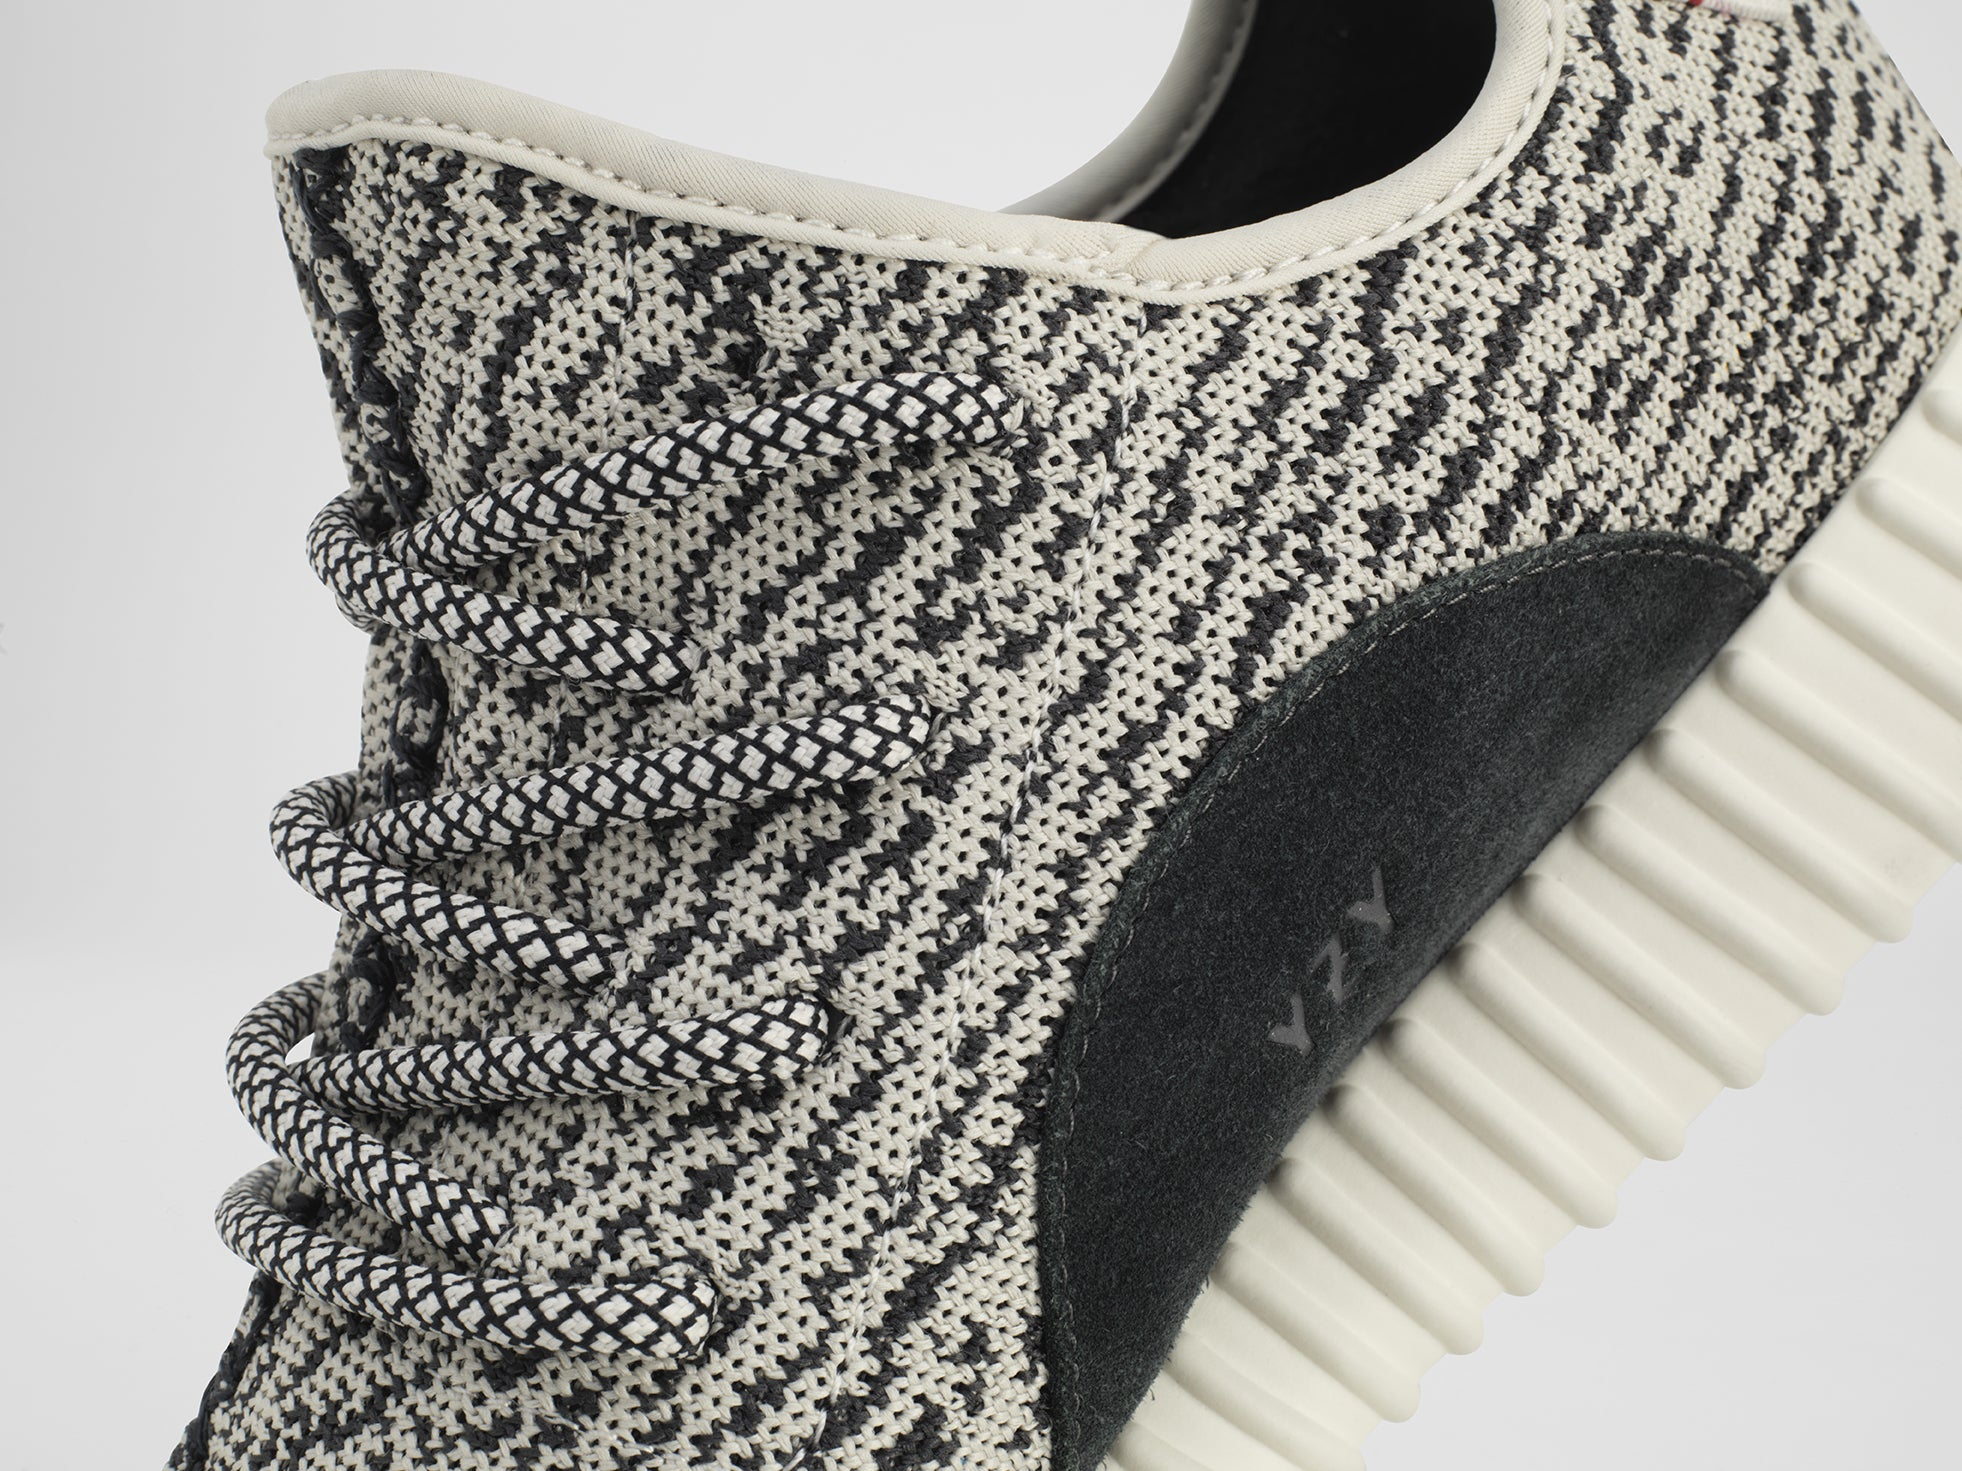 16a3282ec142d Kanye West s Yeezy Boost trainers  All you need to know ahead of the ...